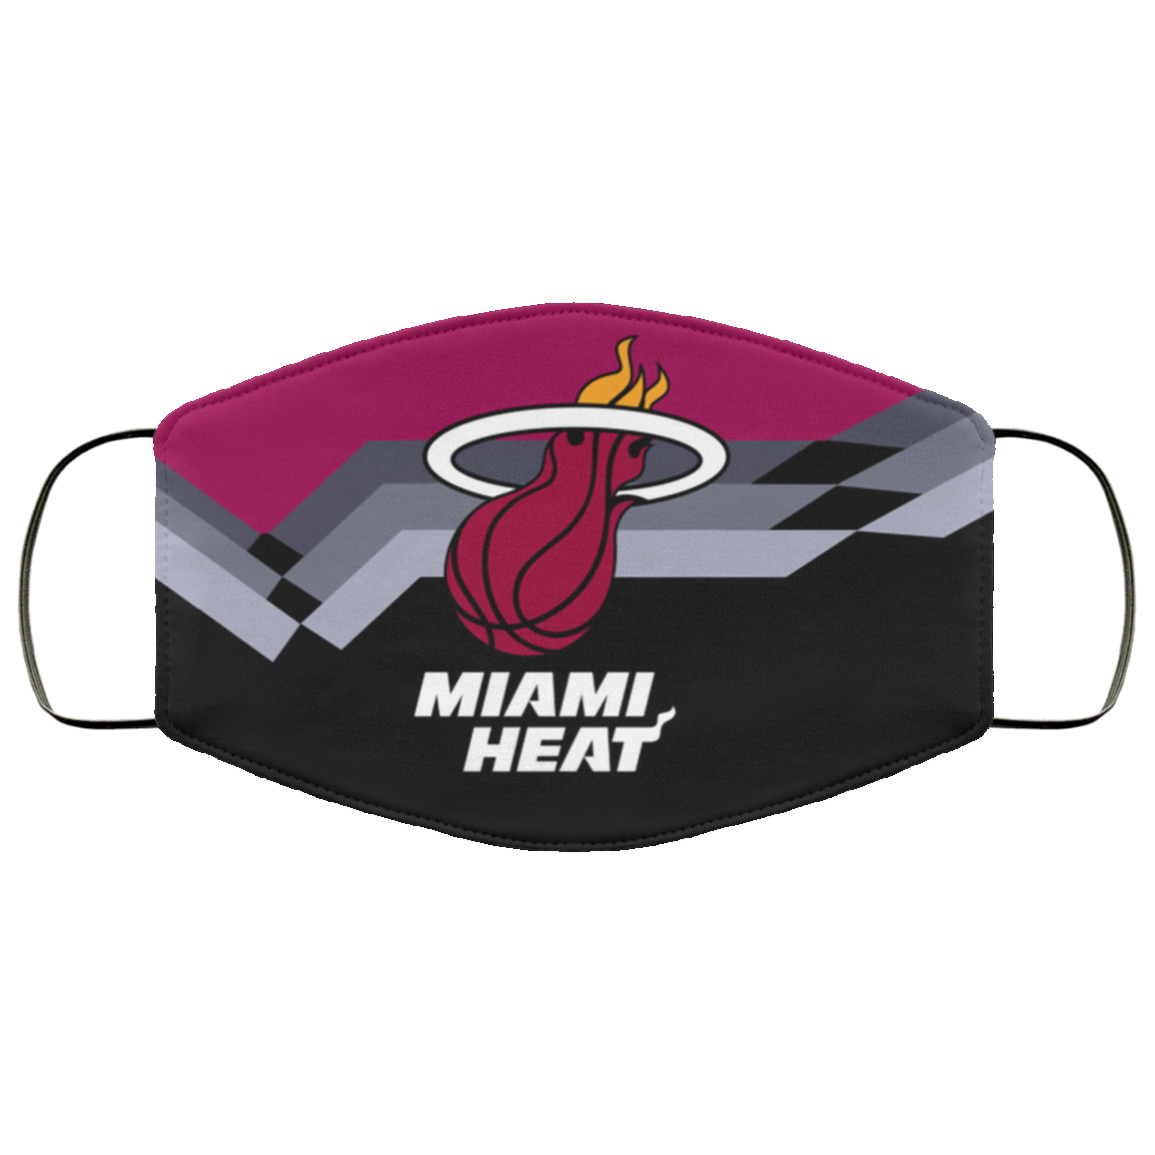 Miami Heat Nba Face Mask